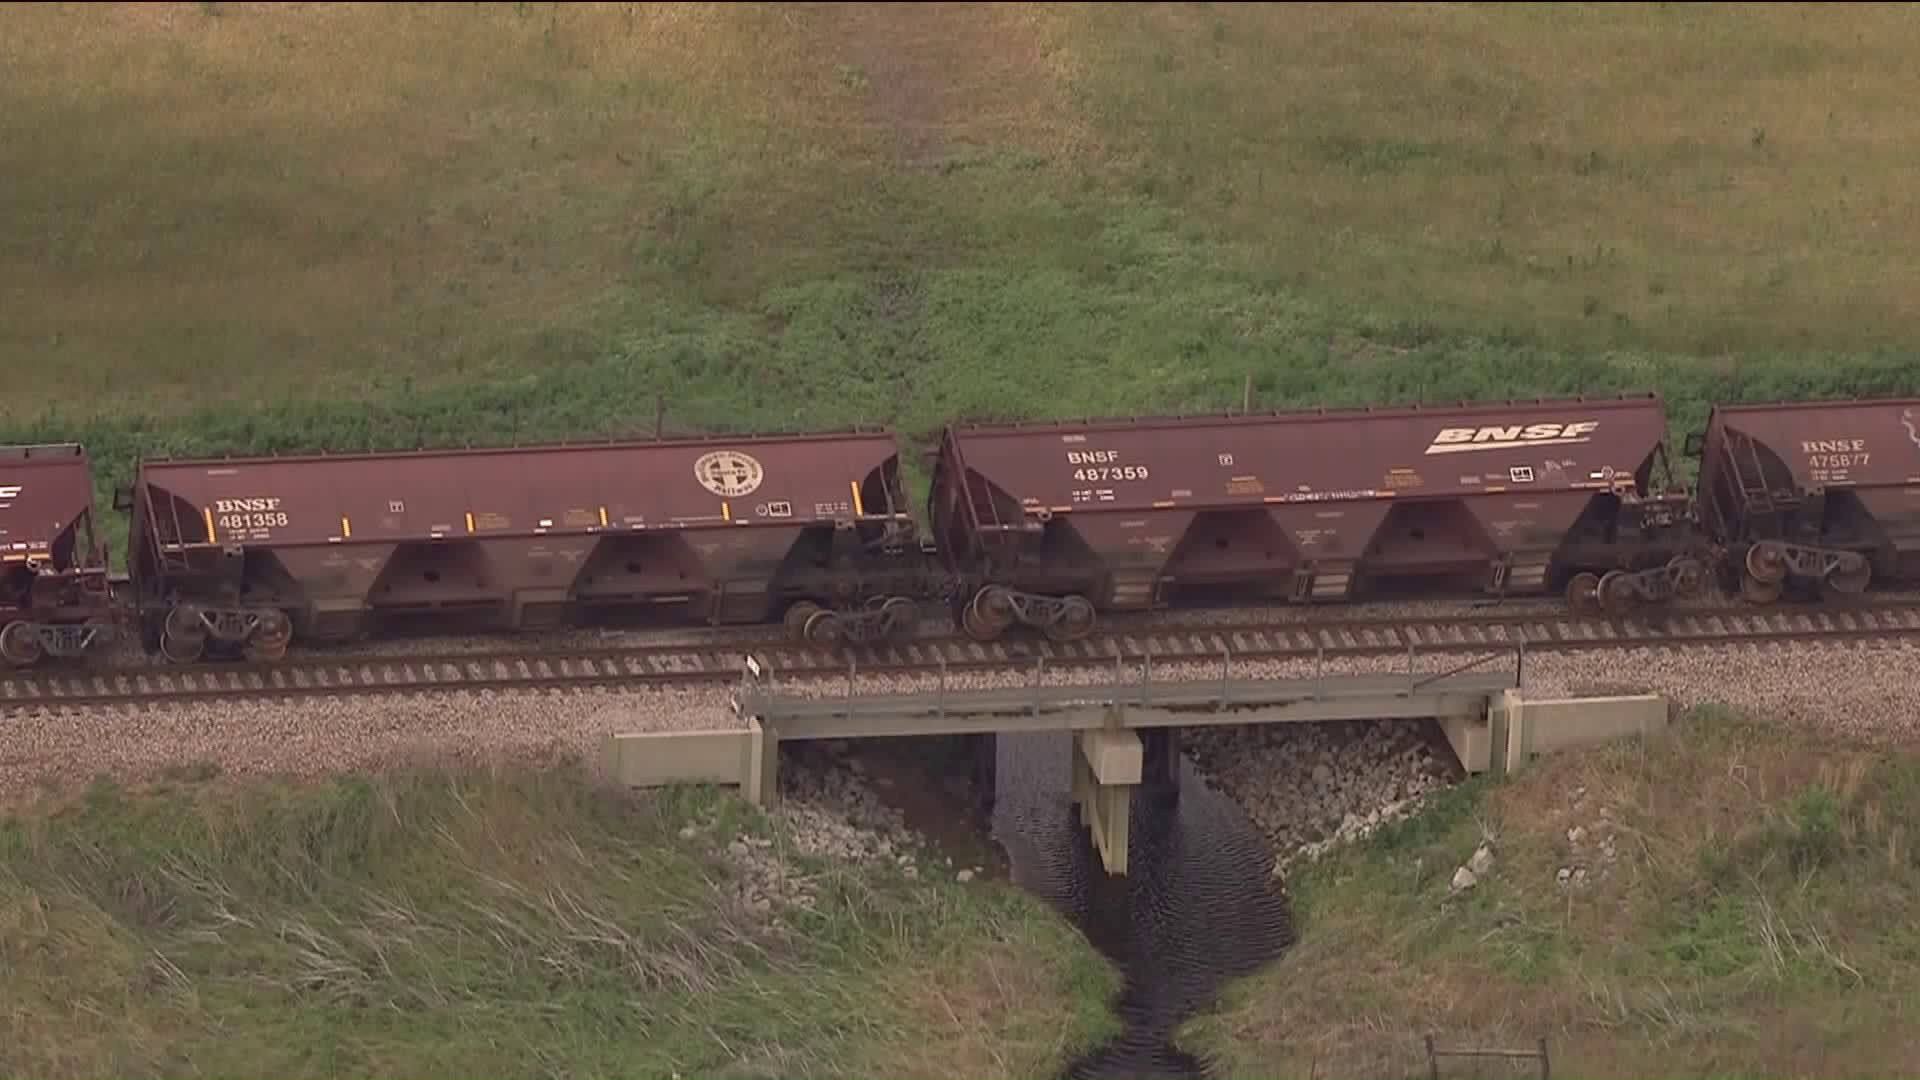 Tornado hit train, causing it to topple over